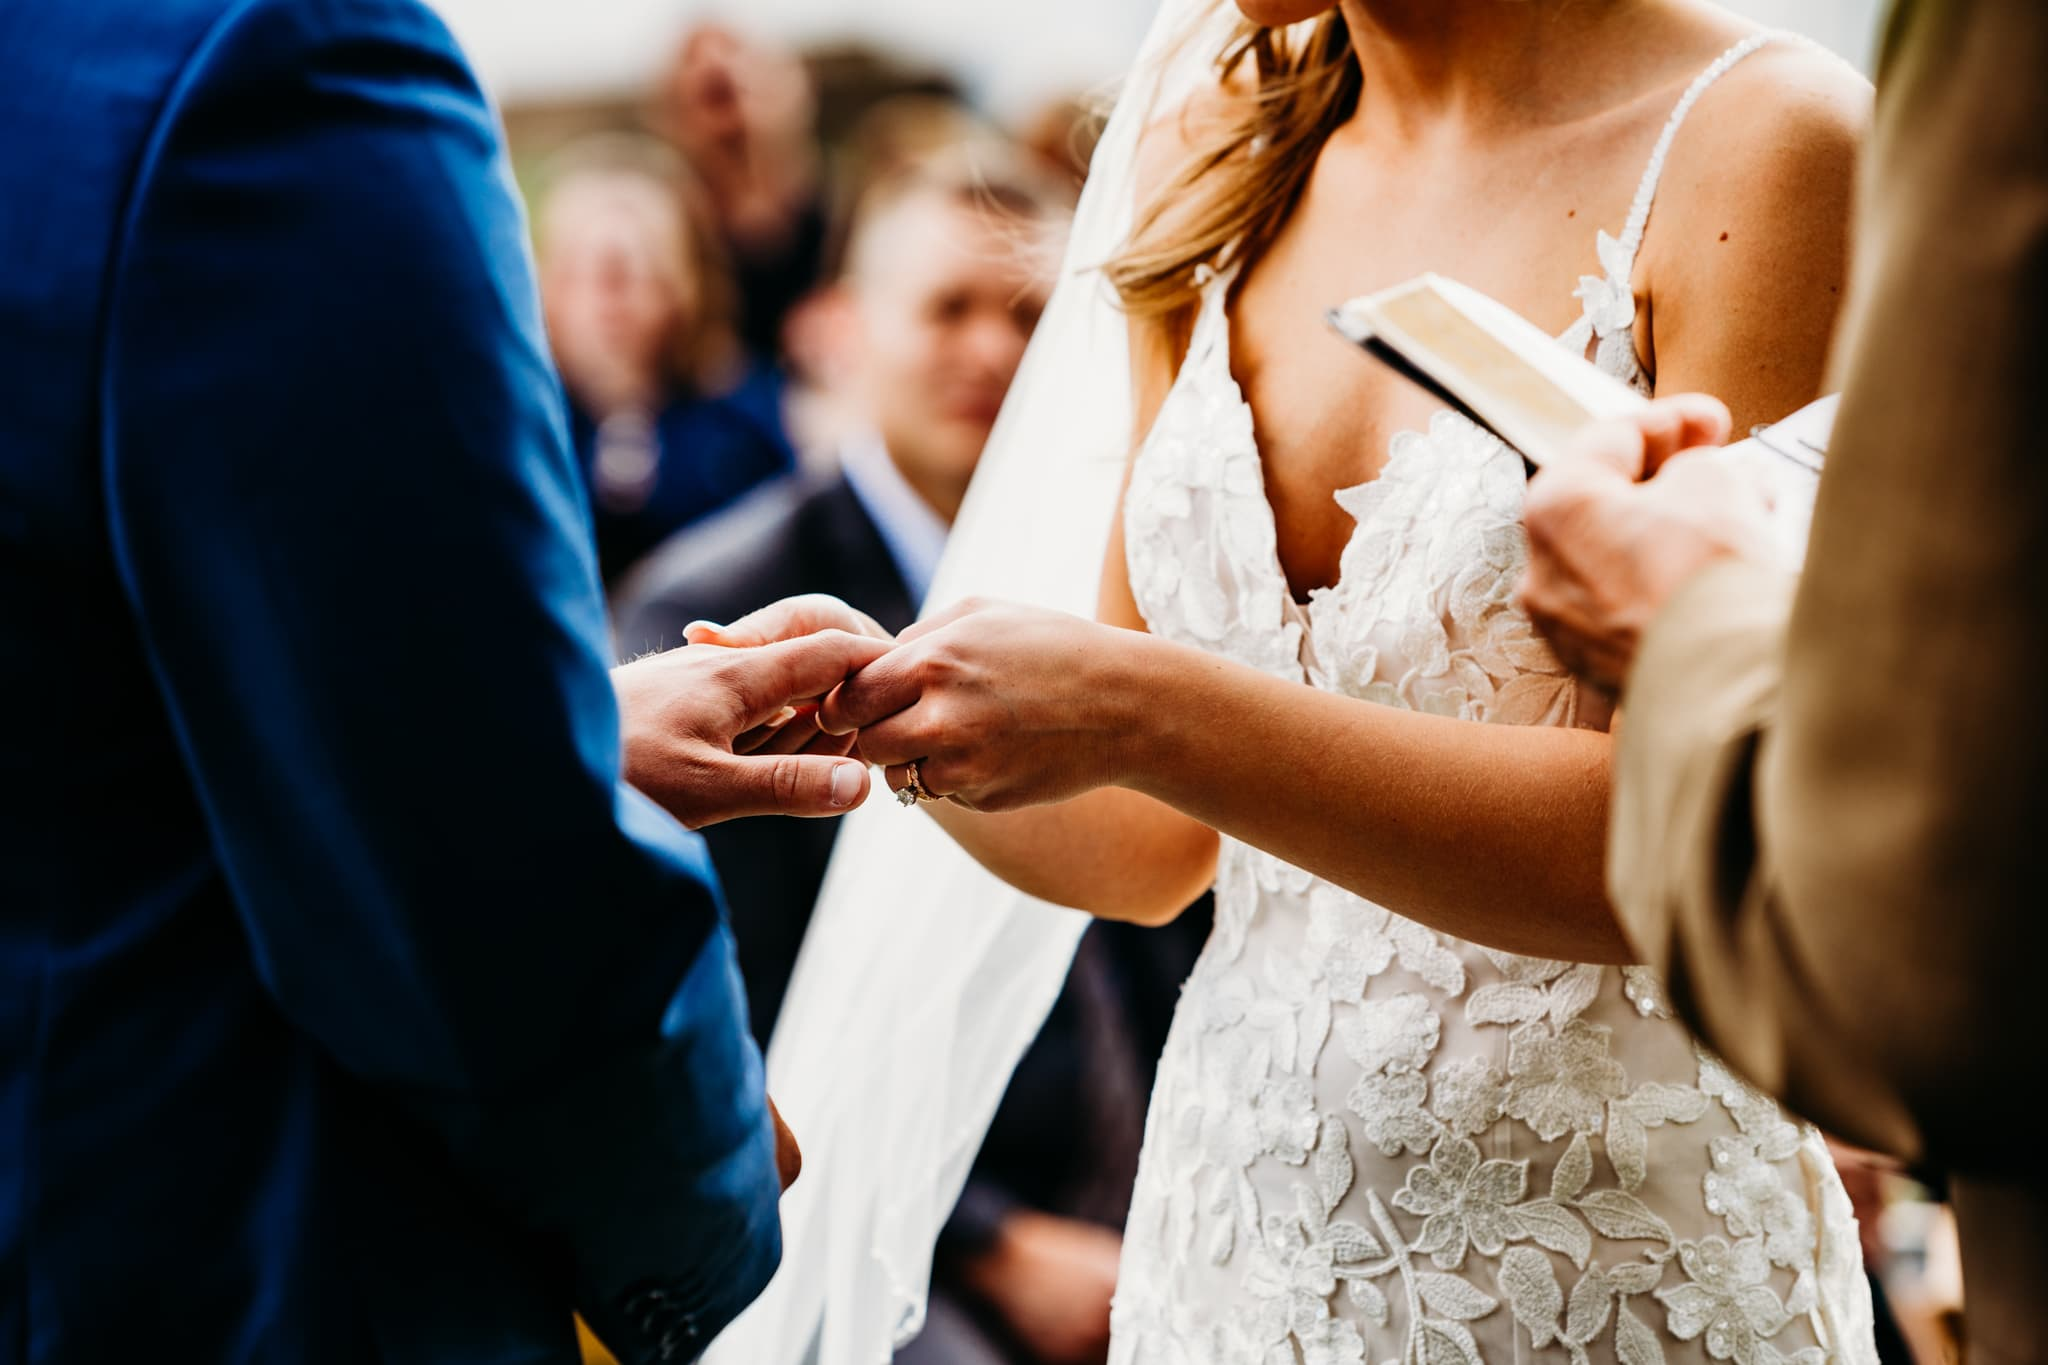 Bride and groom exchange rings at their wedding at schroeder farm